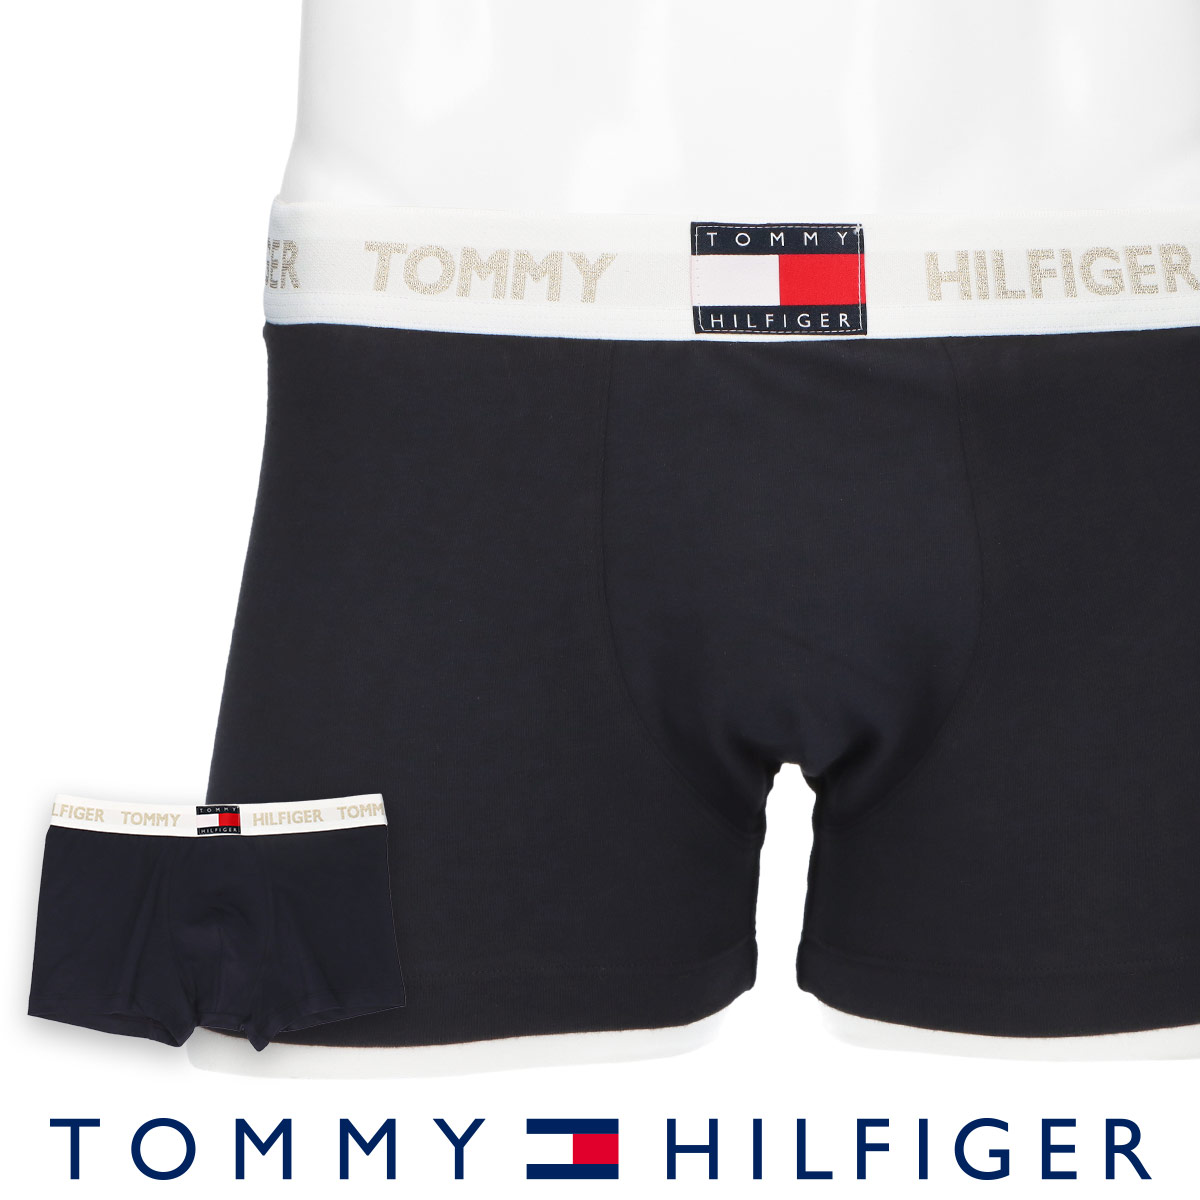 TOMMY HILFIGER|トミーヒルフィガー TOMMY 85 HOLIDAY TRUNK トミー ホリデー コットン ボクサーパンツ 男性 メンズ プレゼント 贈答 ギフト 53301972【ゆうパケットお取り扱い不可】